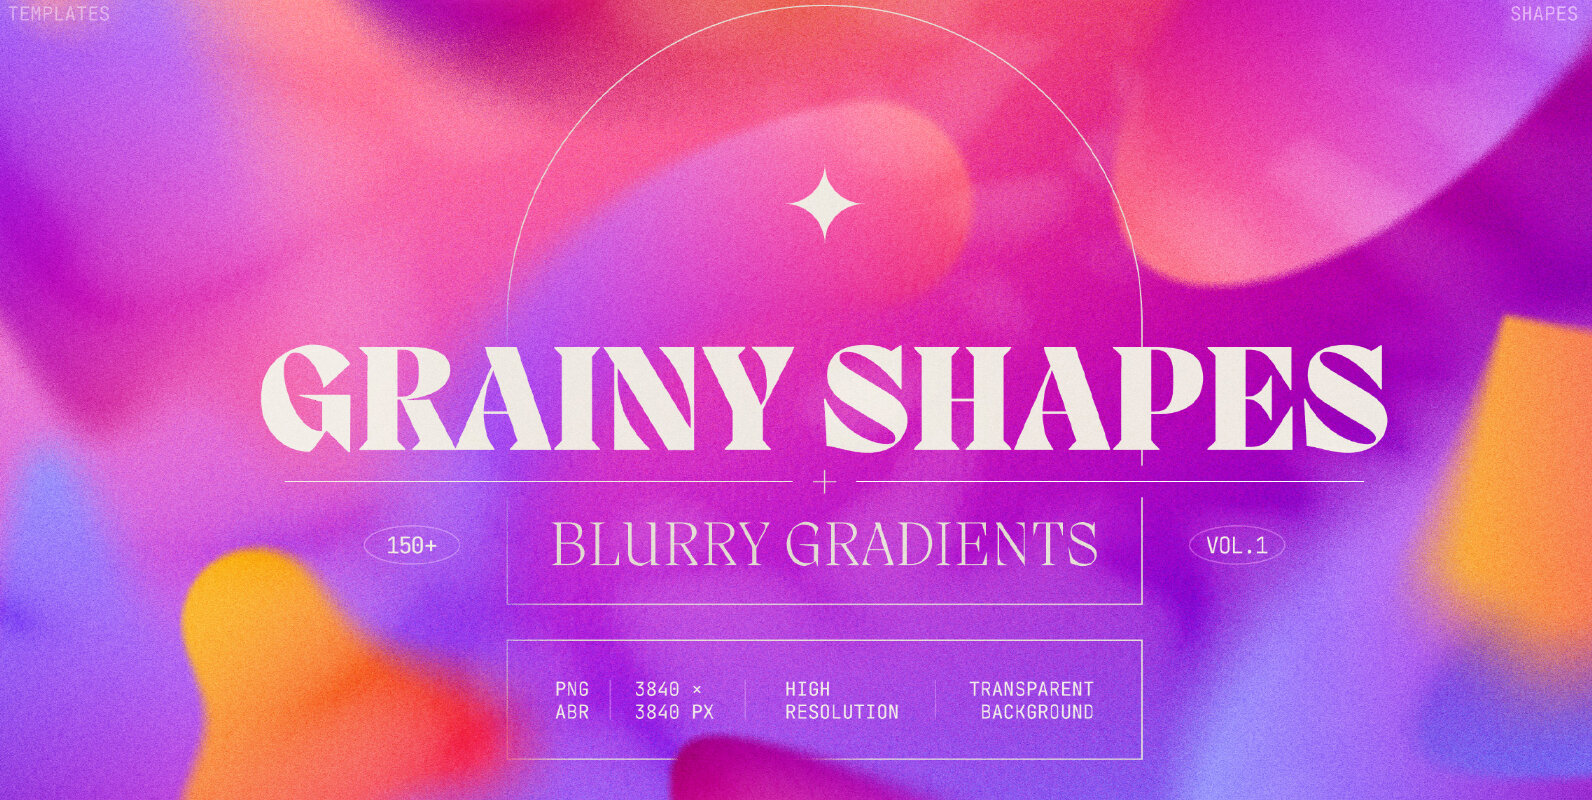 Grainy Shapes and Blurry Gradients Collection